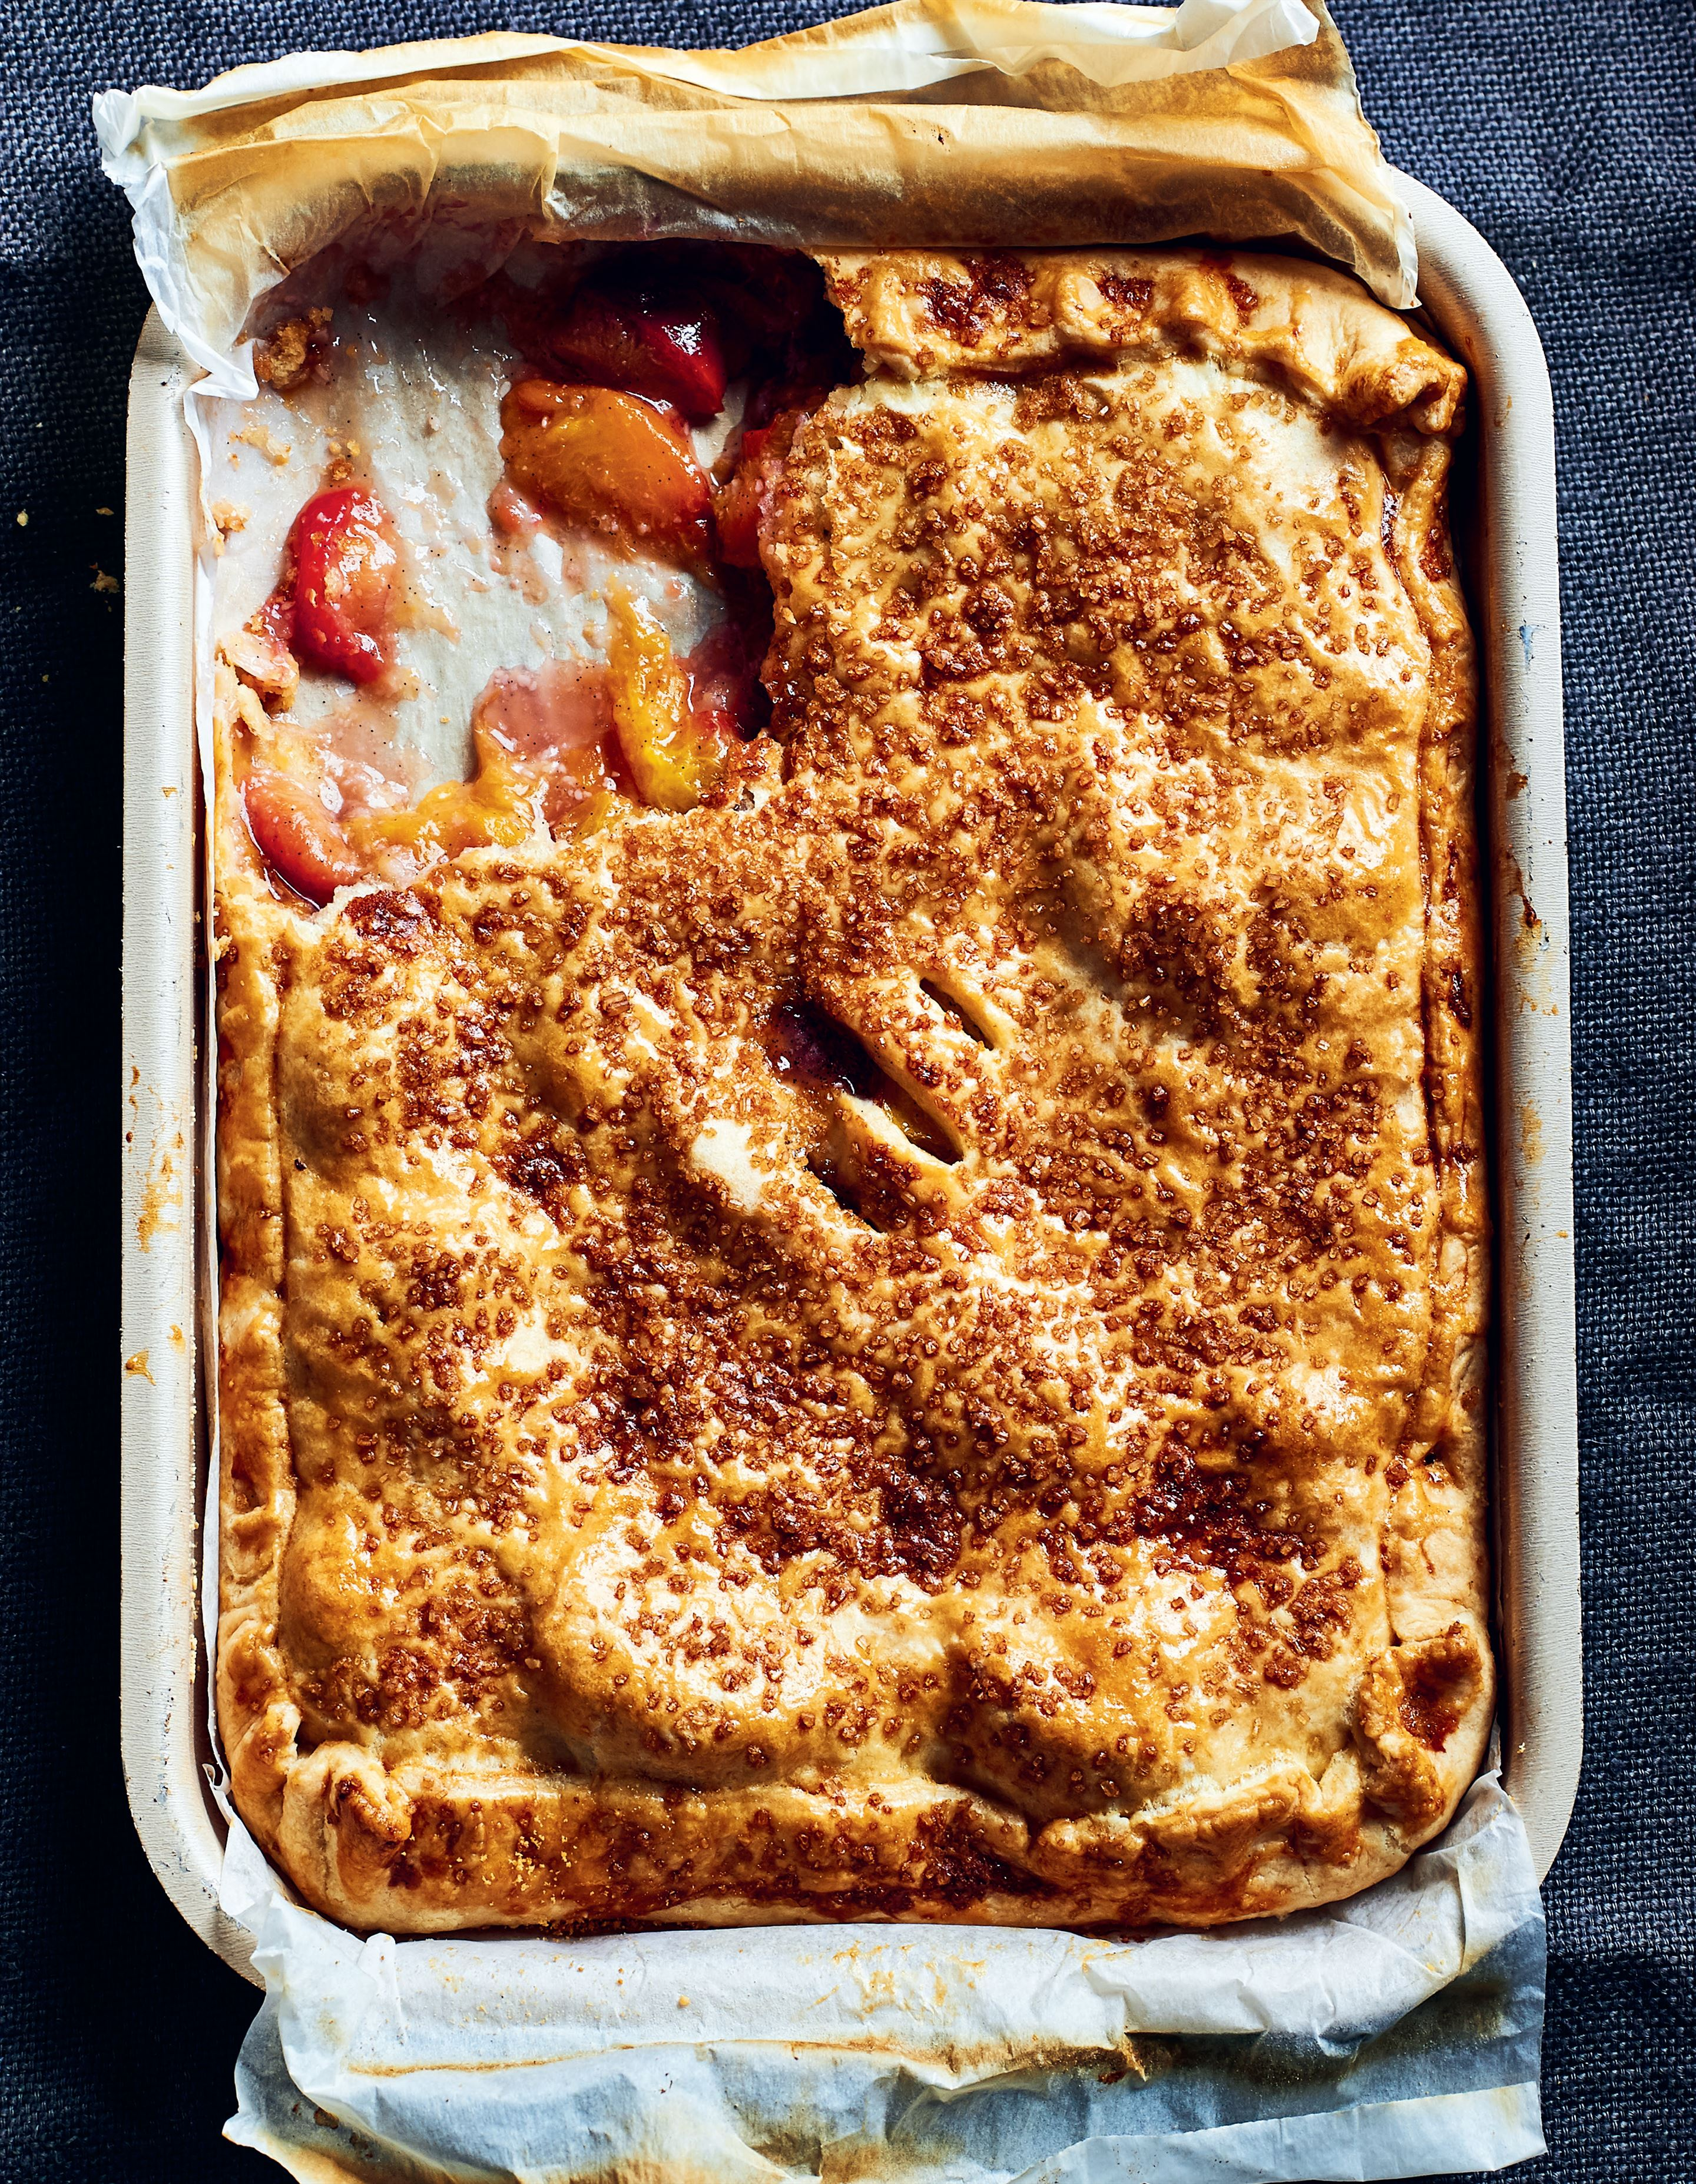 Peach and plum pie with vanilla and almonds